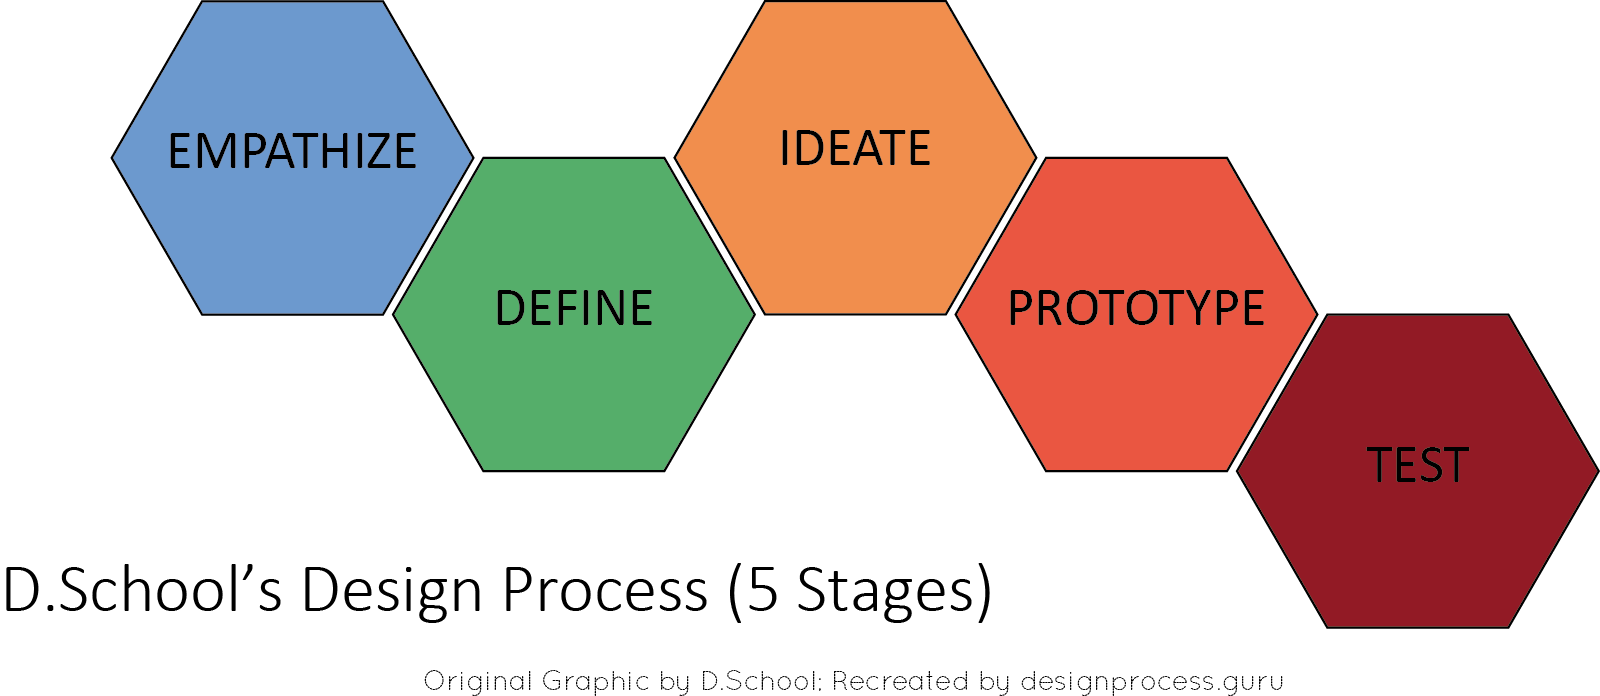 D.School's 5 Stage Process